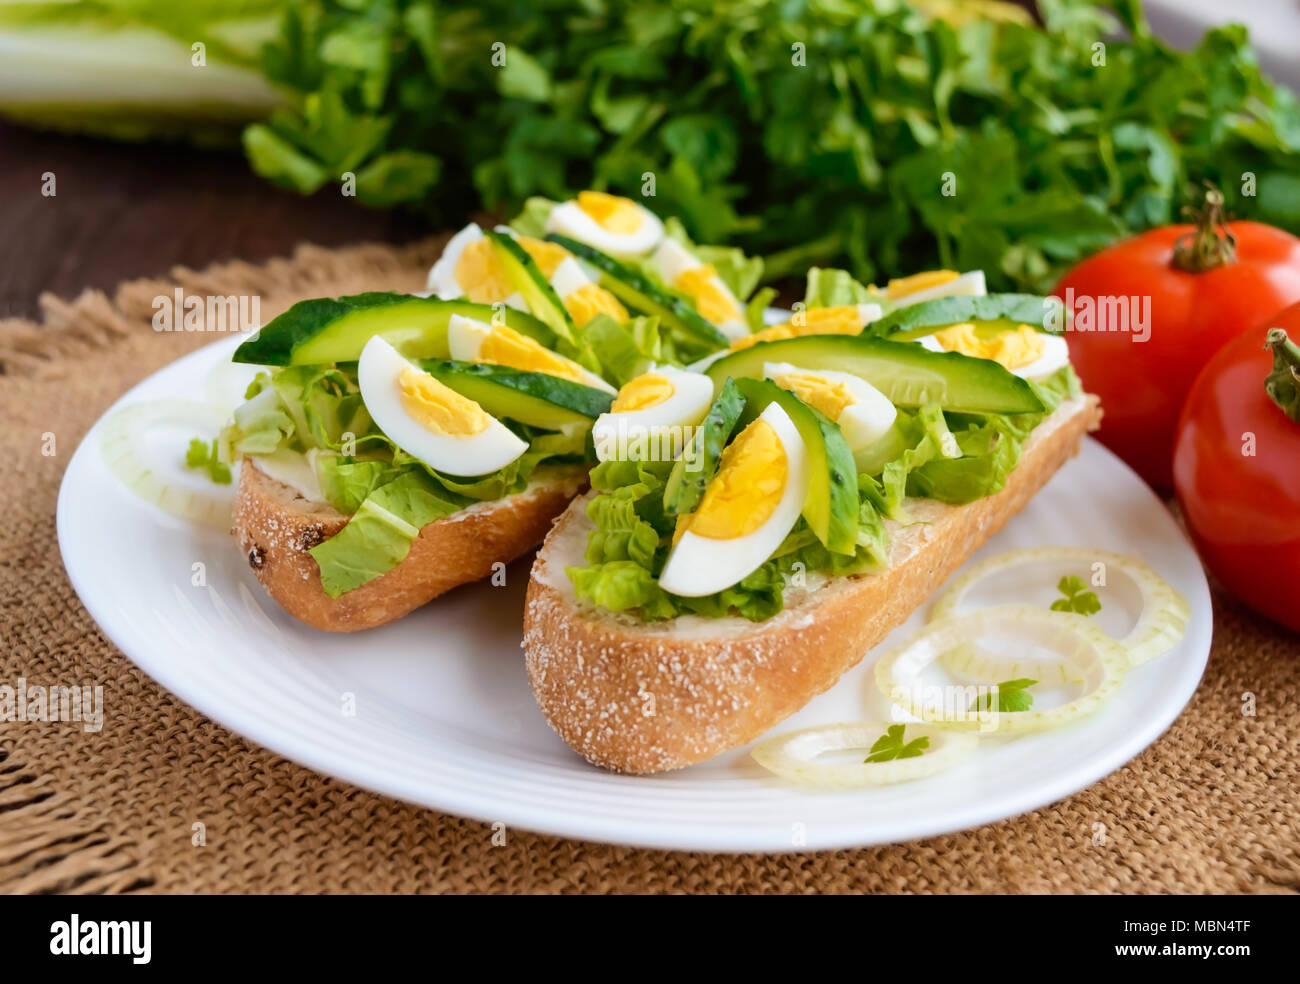 Fresh green sandwich with fresh cucumber, Chinese cabbage, quail egg. Dietary and vegetarian dishes. - Stock Image